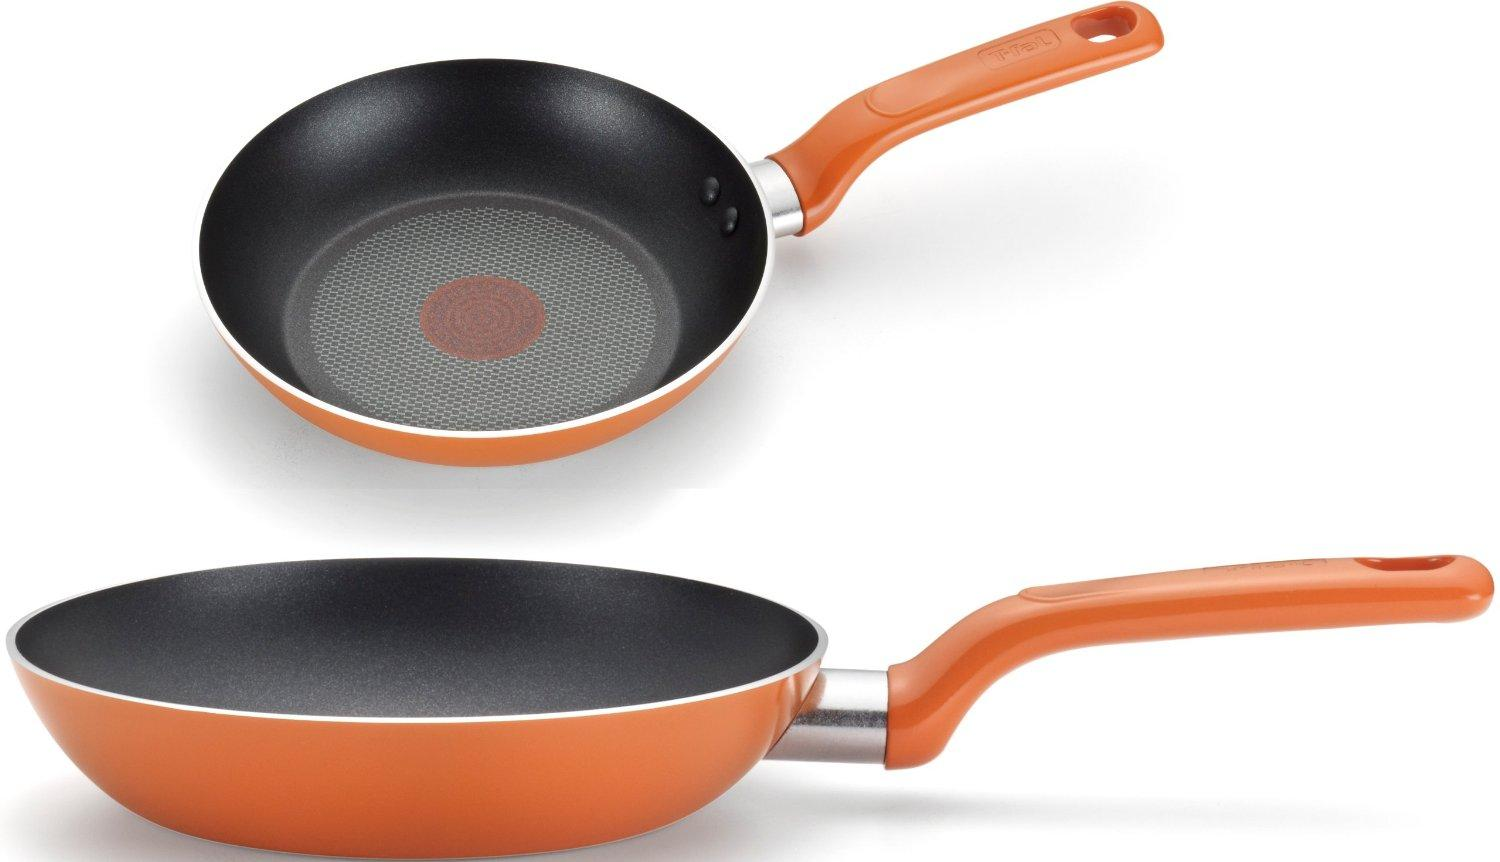 T-fal C971S2 Excite Nonstick Thermo-Spot Dishwasher Safe Oven Safe PFOA Free 8-Inch and 10.25-Inch Fry Pan Cookware Set, 2-Piece, Orange